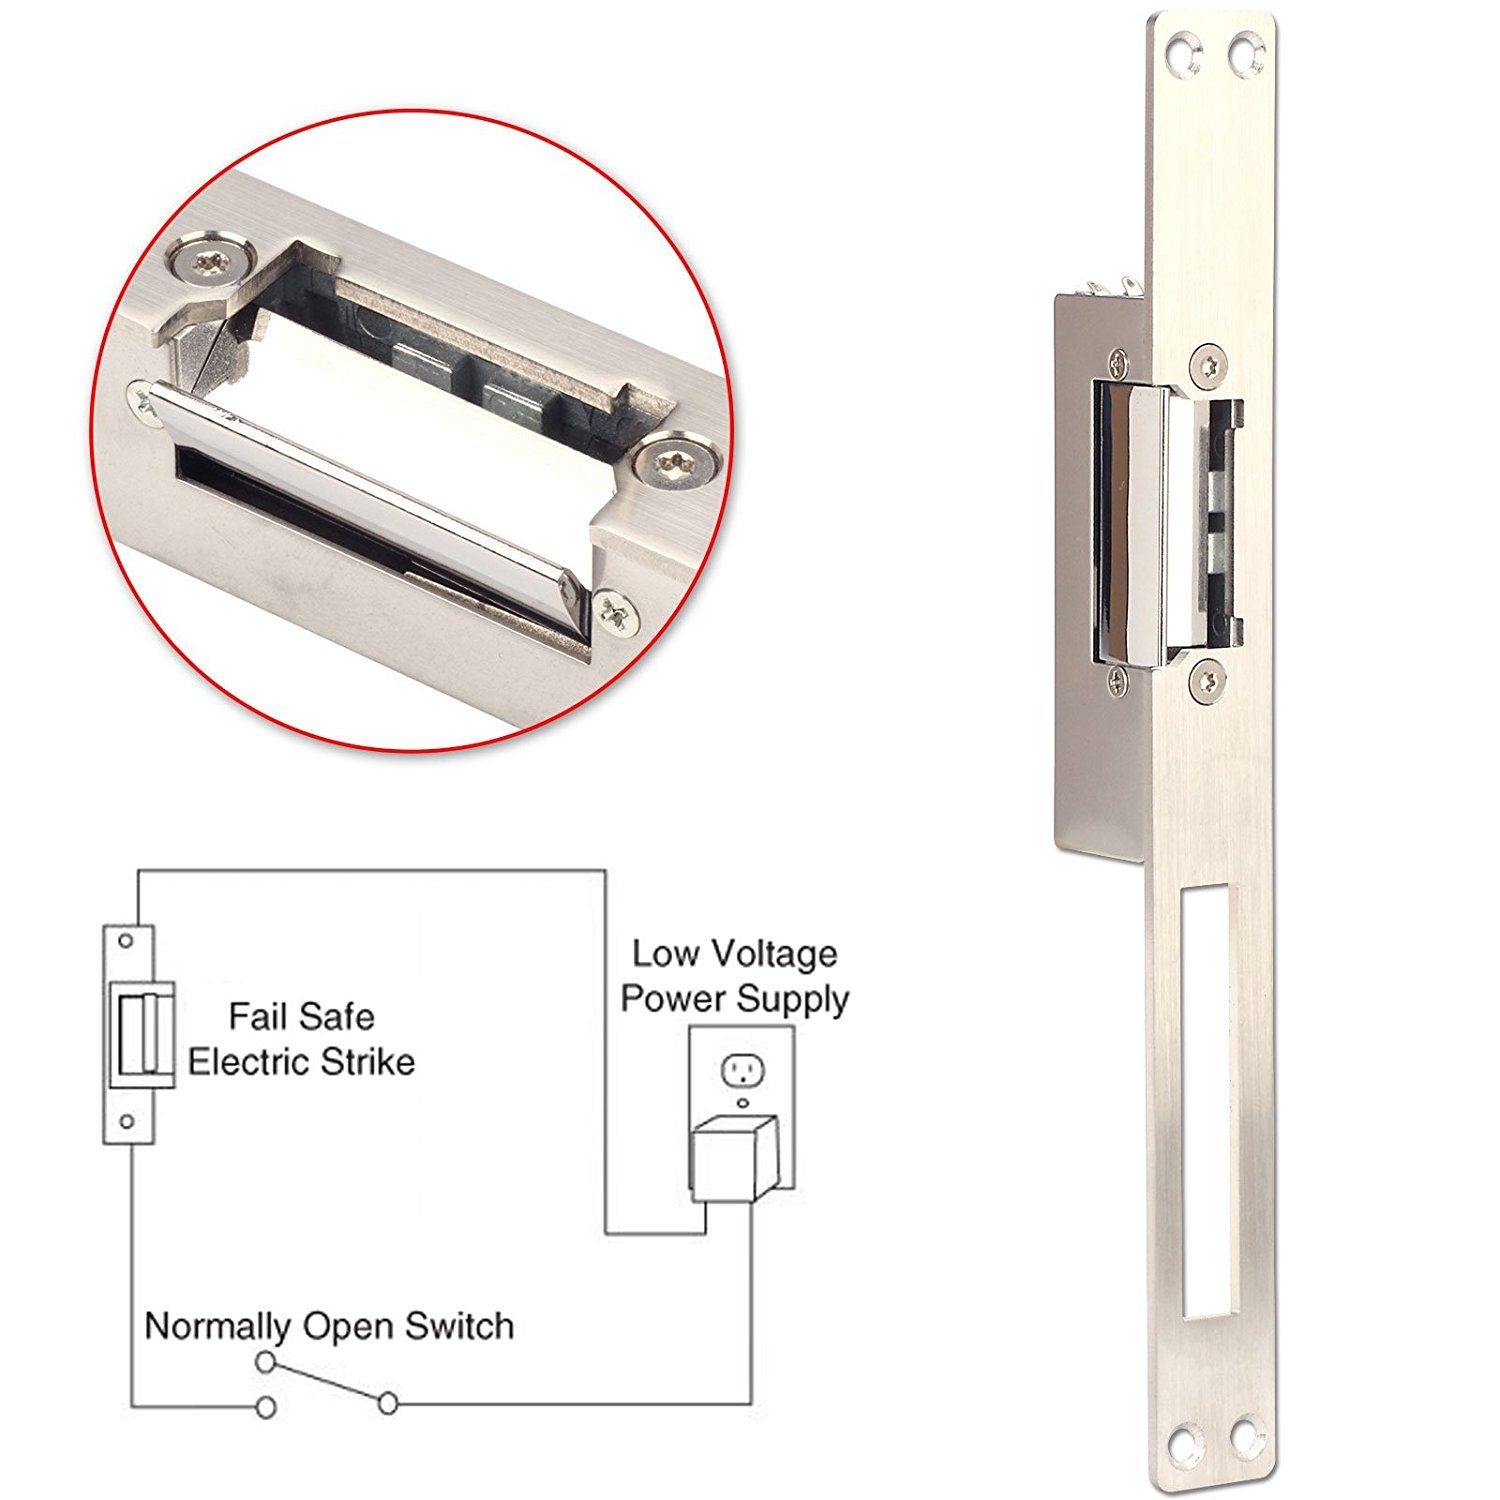 Us 25 37 Feb Only Metal Electric Strike Narrow Type 12v Dc Fail Secure Nc Electric Door Lock For Wooden And M Access Control System Access Control Metal Door